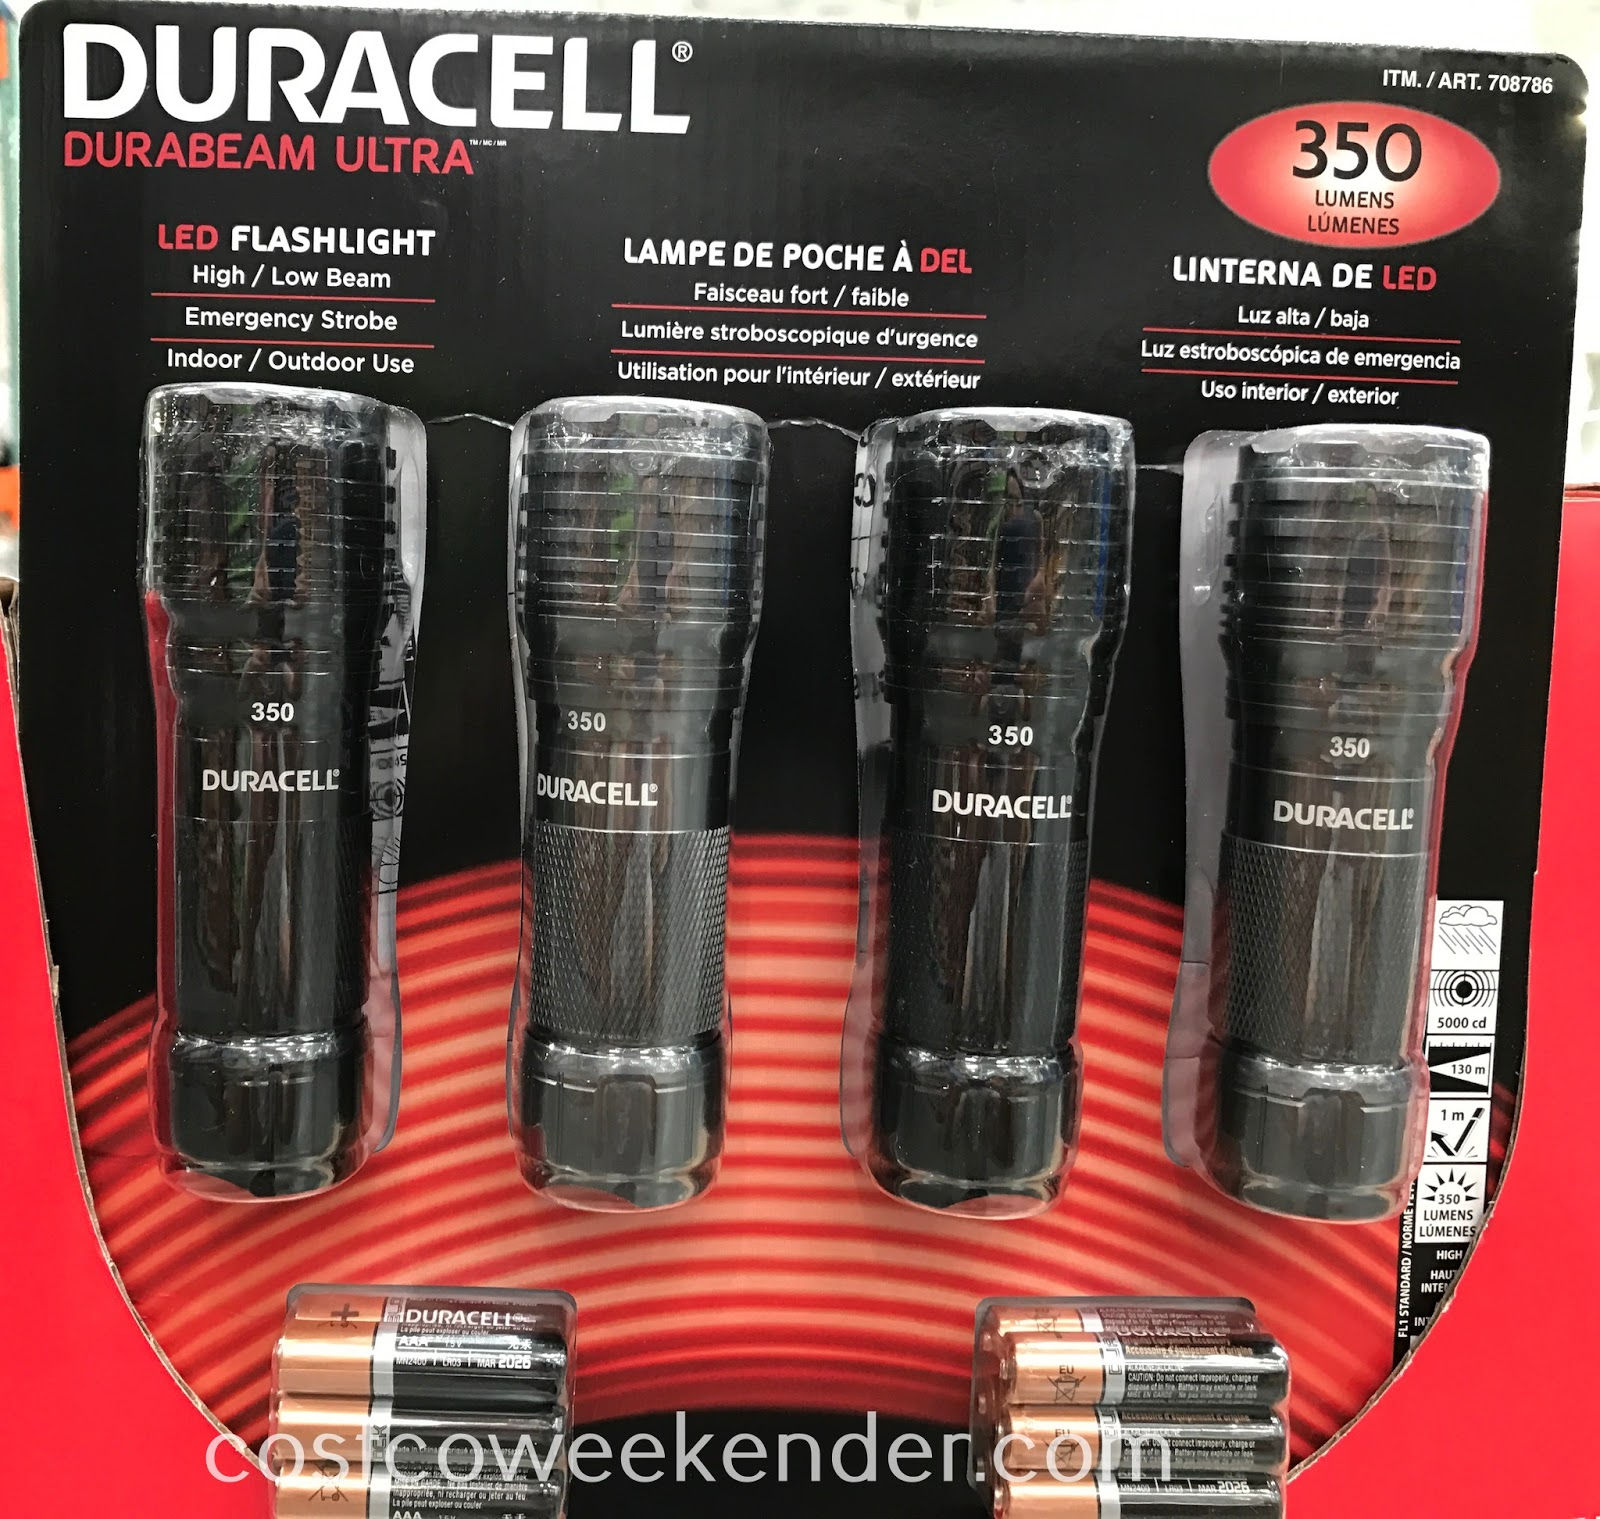 Don't get stuck in an emergency without light with the Duracell Durabeam Ultra LED Flashlight 350 Lumens